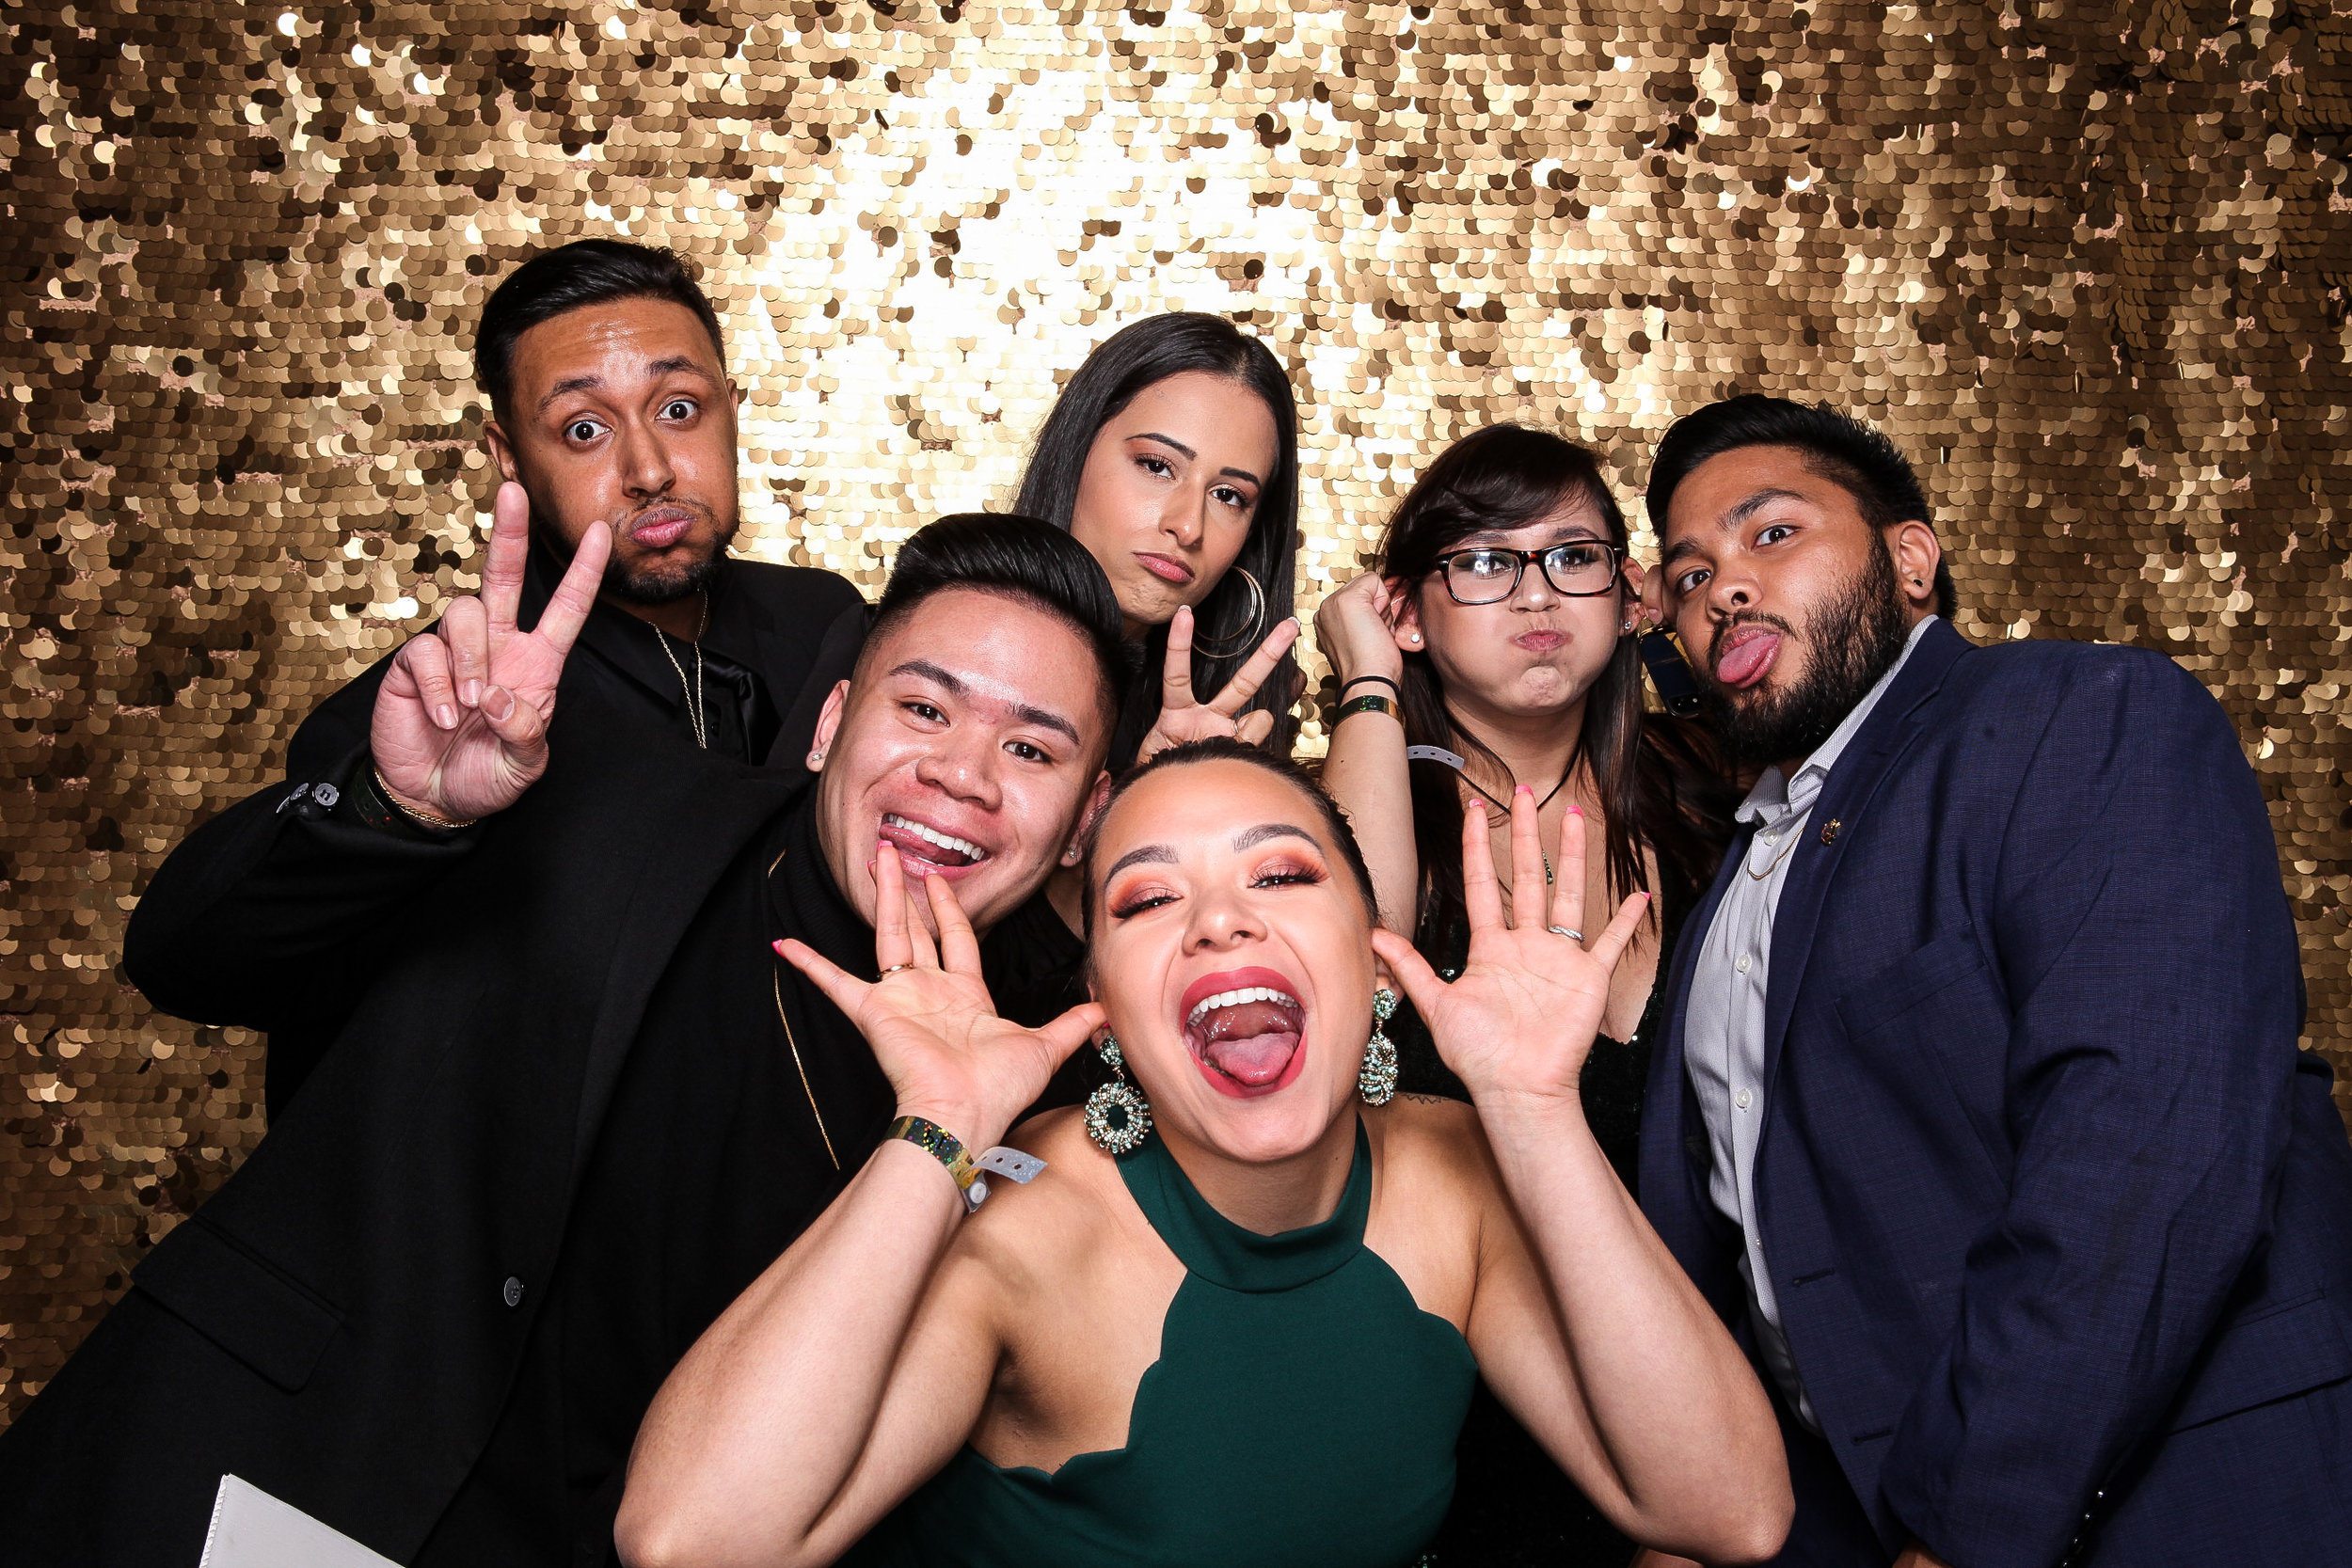 20190503_Adelphi_Senior_Formal-153.jpg